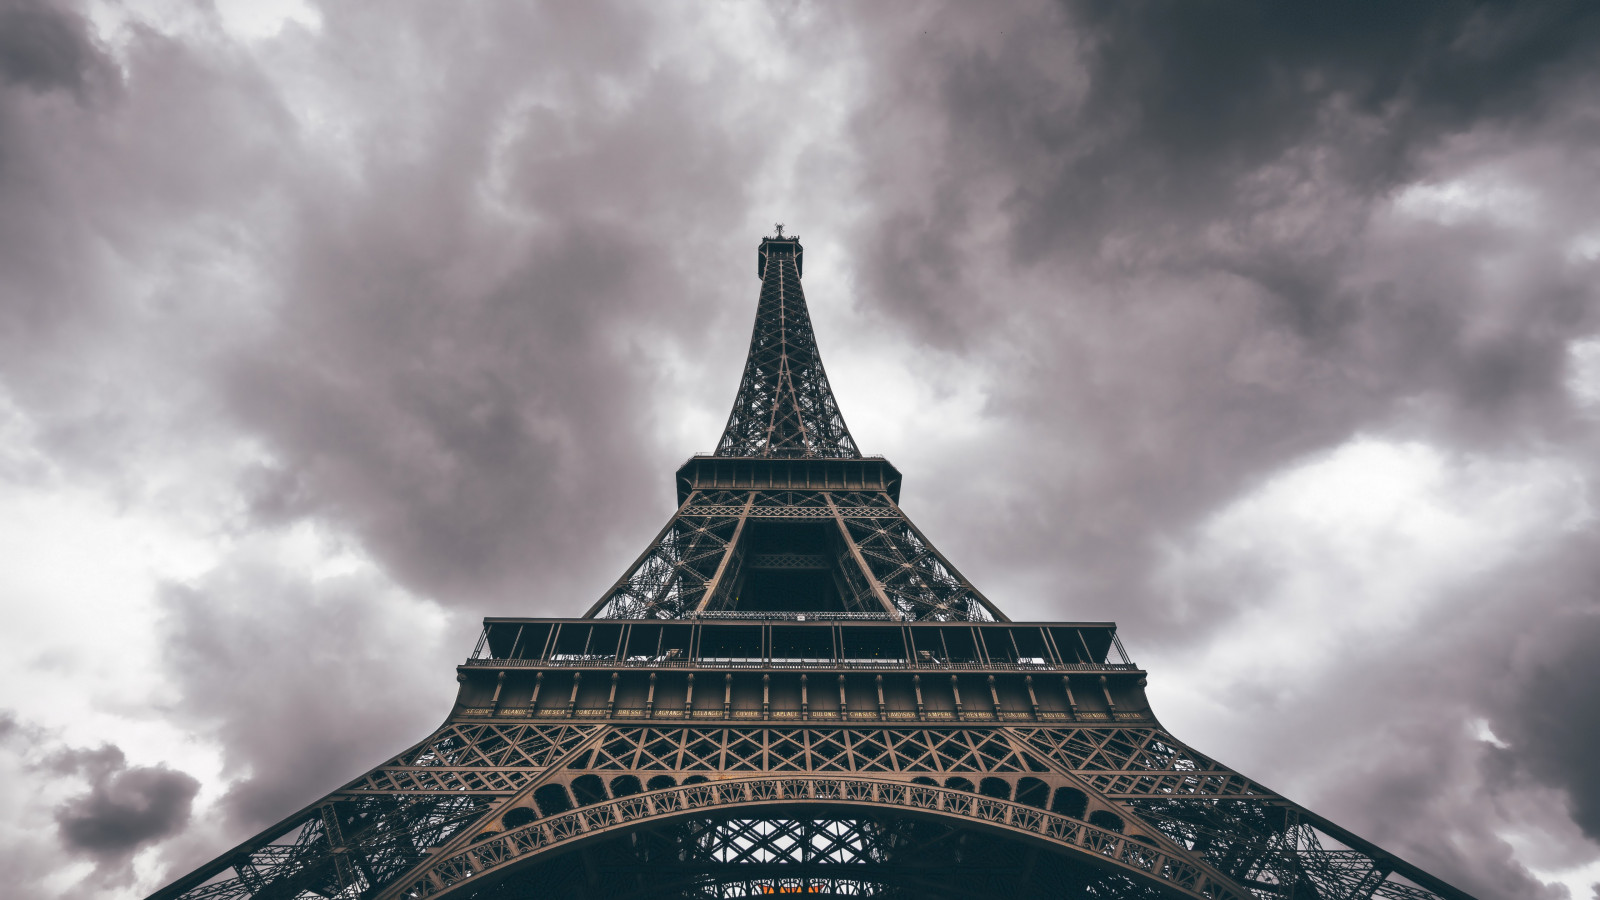 Eiffel Tower in a cloudy day wallpaper 1600x900